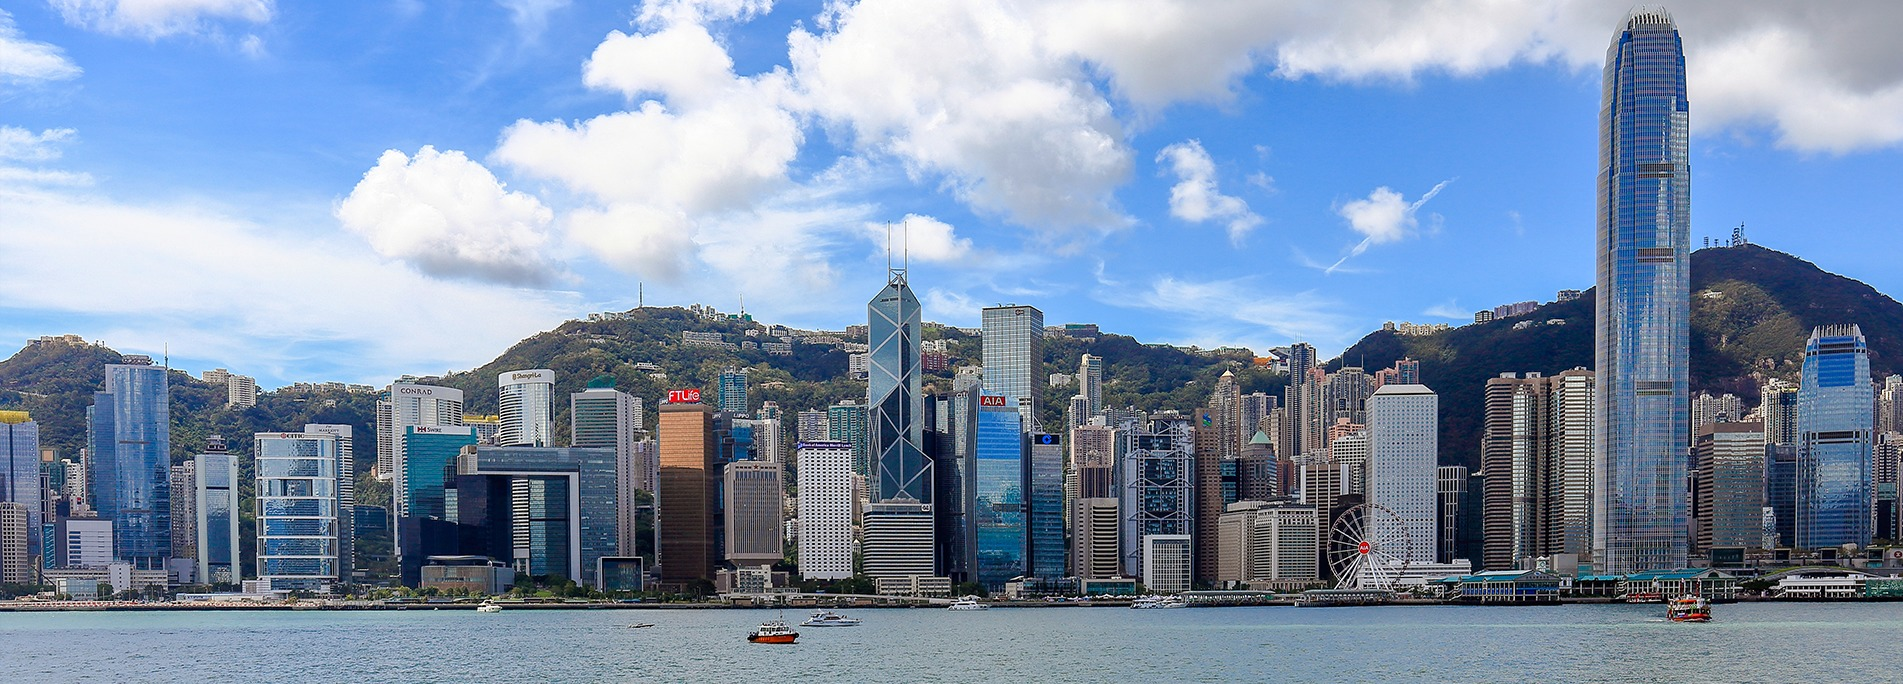 Hong Kong, the third-largest financial center in the world, is an international hub of China.